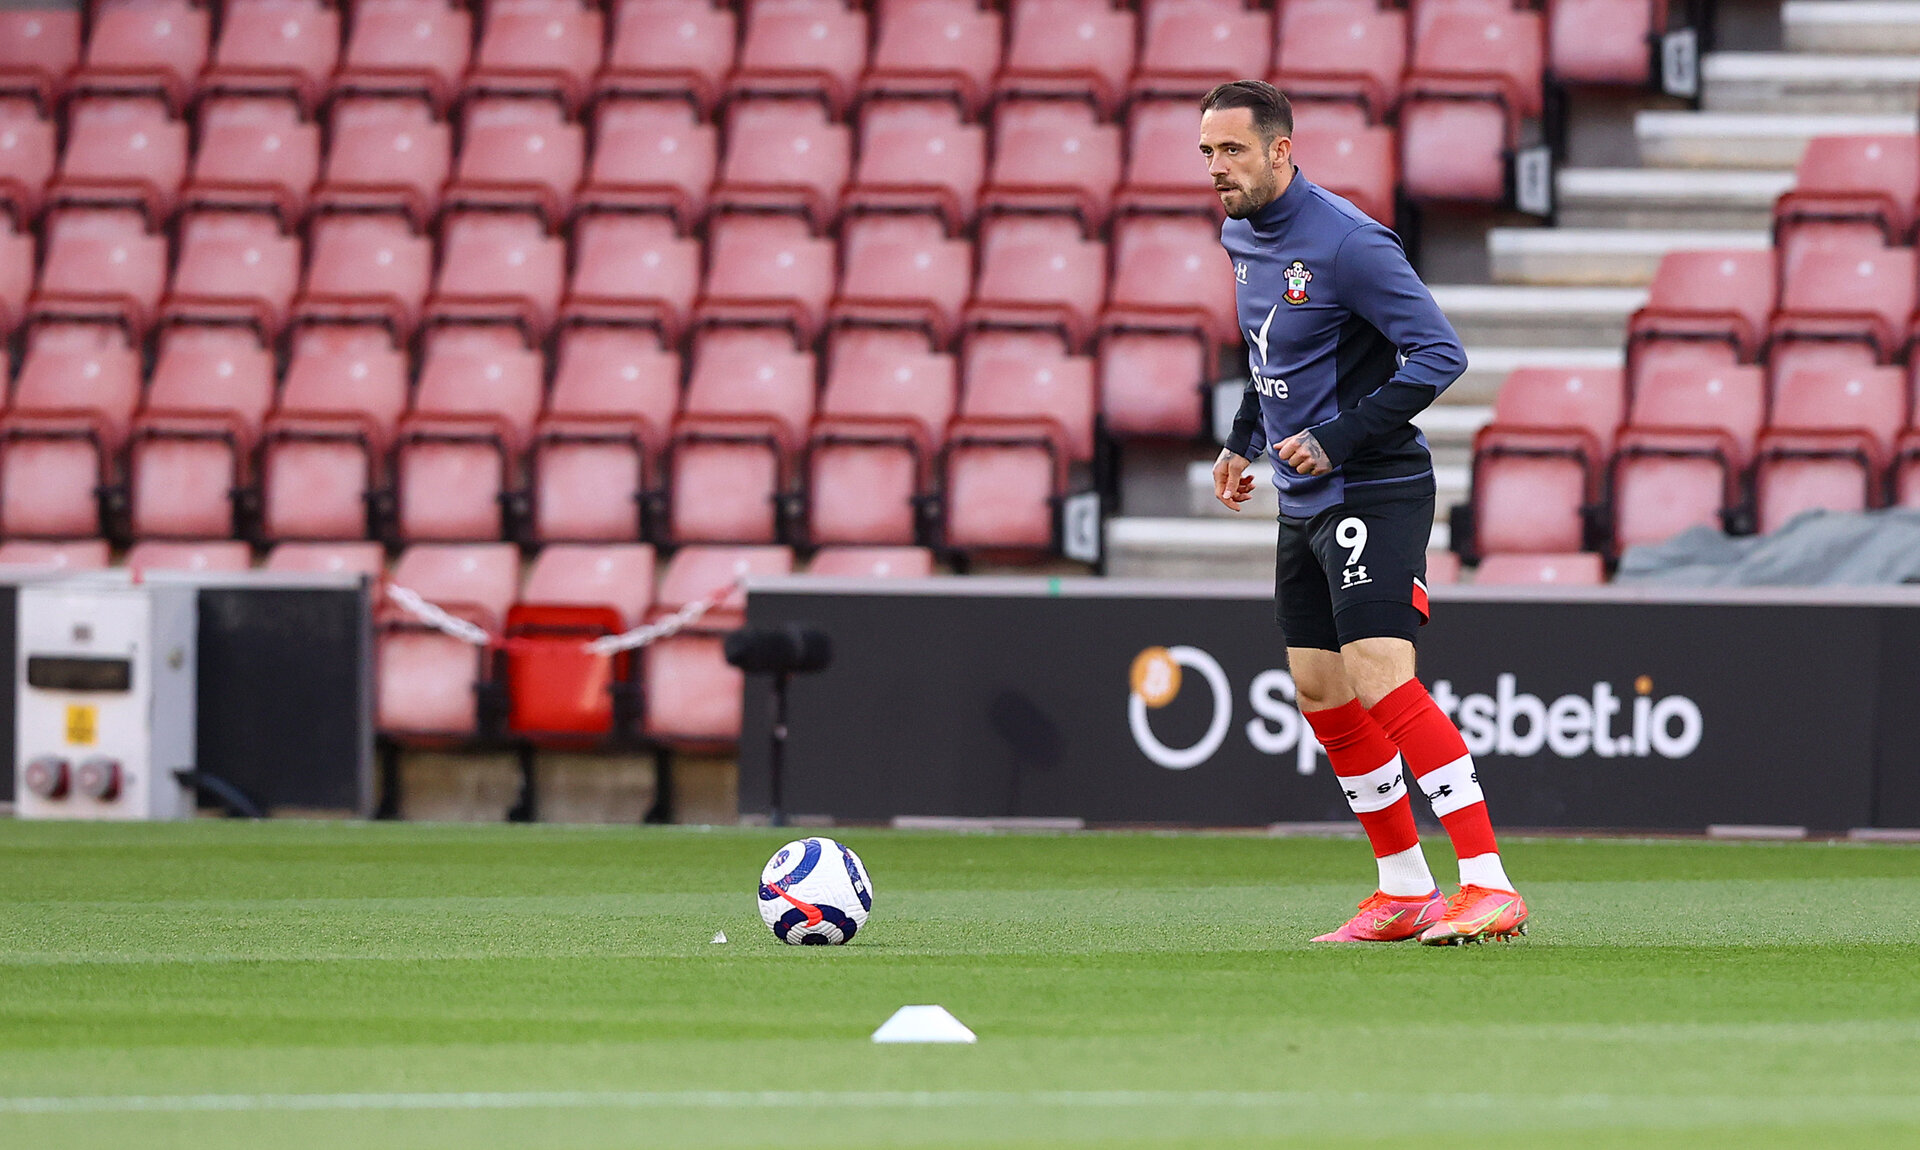 SOUTHAMPTON, ENGLAND - MAY 11: Danny Ings of Southampton warms up ahead of the Premier League match between Southampton and Crystal Palace at St Mary's Stadium on May 11, 2021 in Southampton, England. Sporting stadiums around the UK remain under strict restrictions due to the Coronavirus Pandemic as Government social distancing laws prohibit fans inside venues resulting in games being played behind closed doors.  (Photo by Matt Watson/Southampton FC via Getty Images)